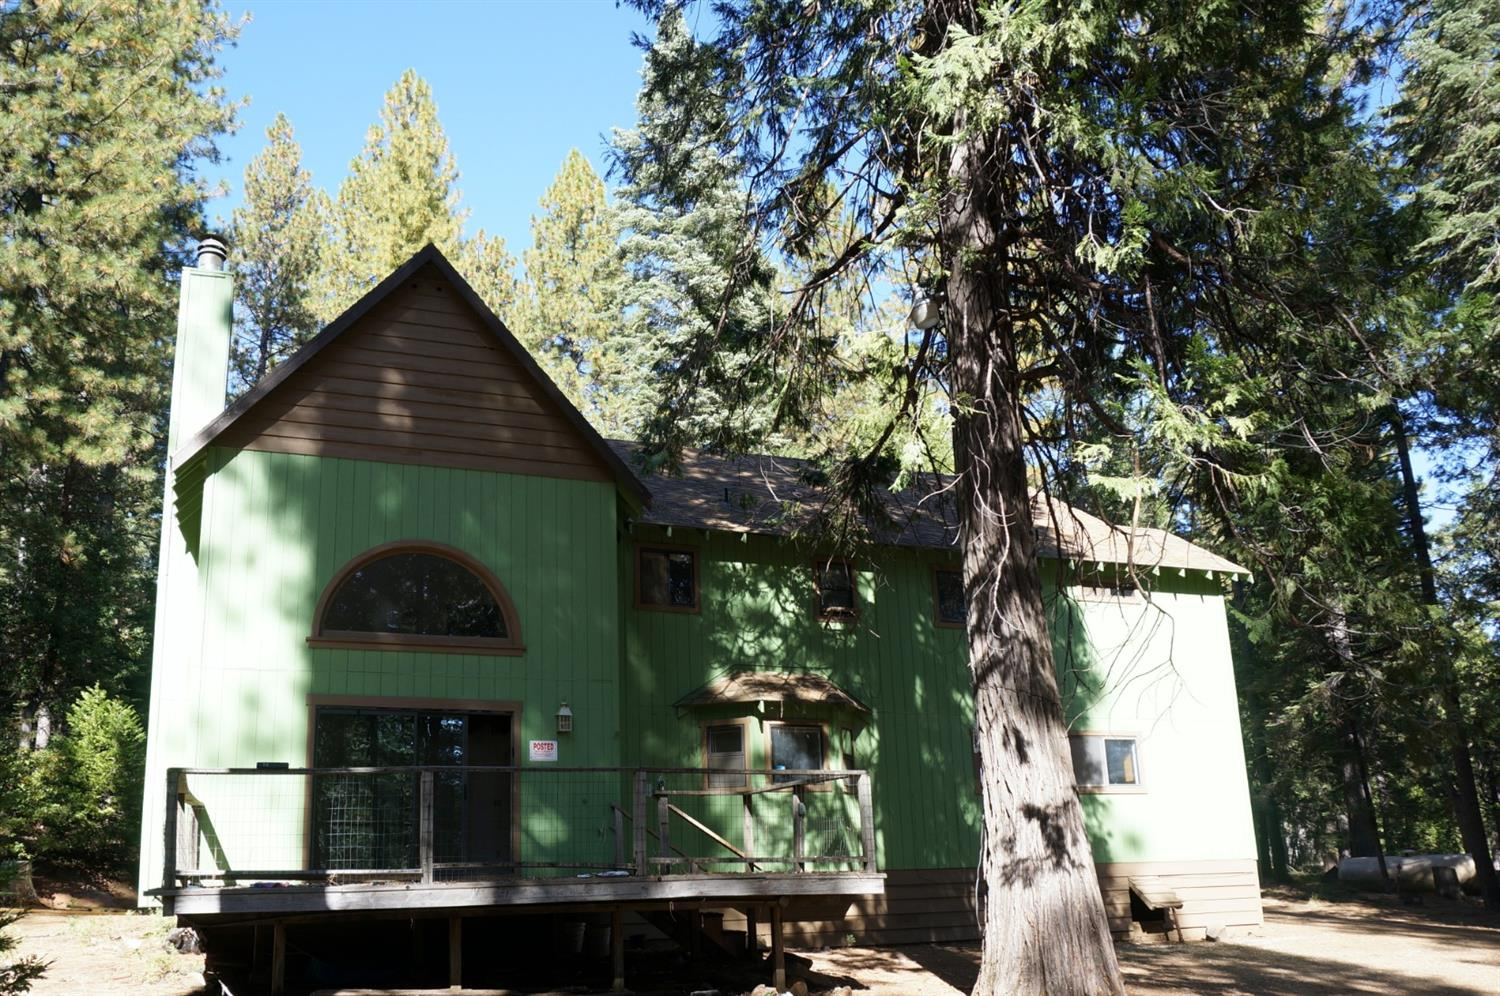 Enjoy the tall pines and privacy! FOUR bedrooms with laundry room Upstairs for convenience. Perfect for a getaway or Vacation Rental. Great layout would make for a great private home!